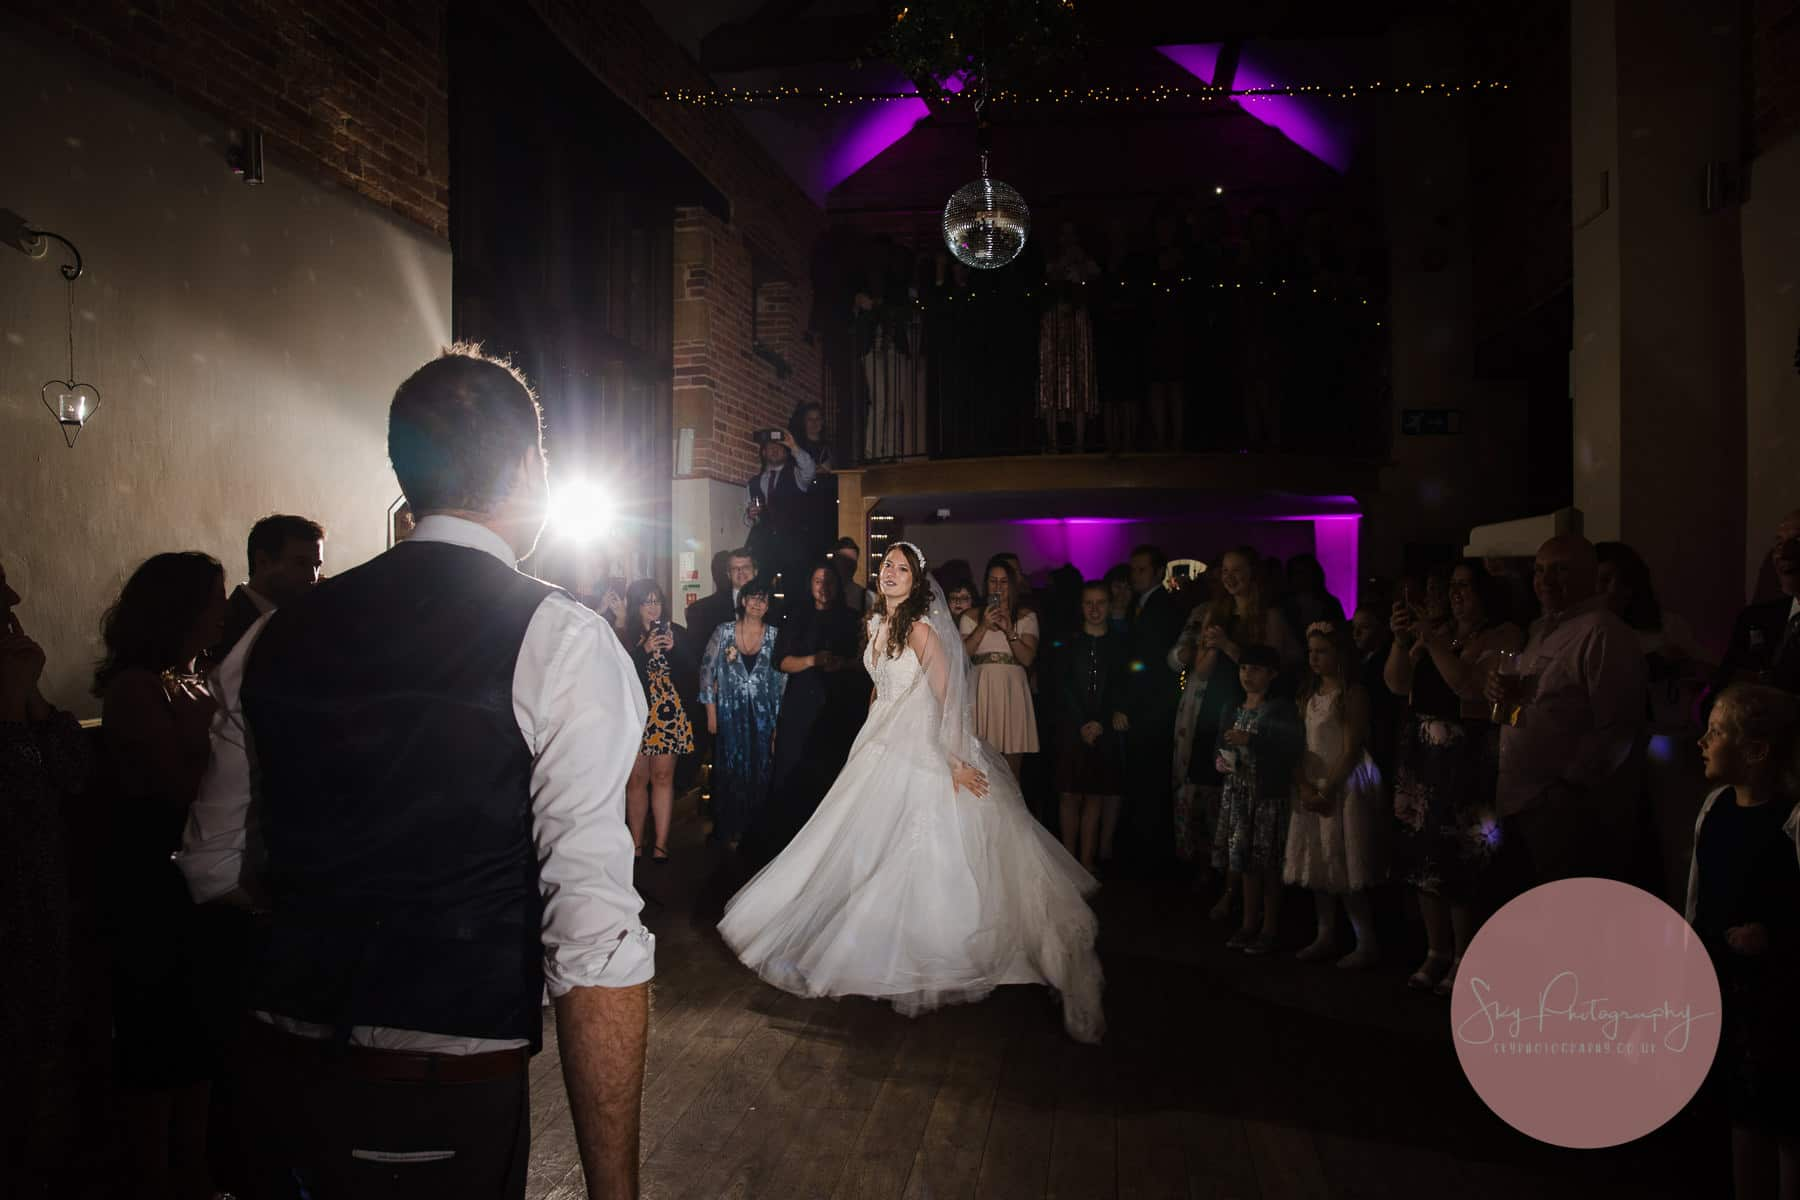 Bride and Groom starting at each other across the dance floor